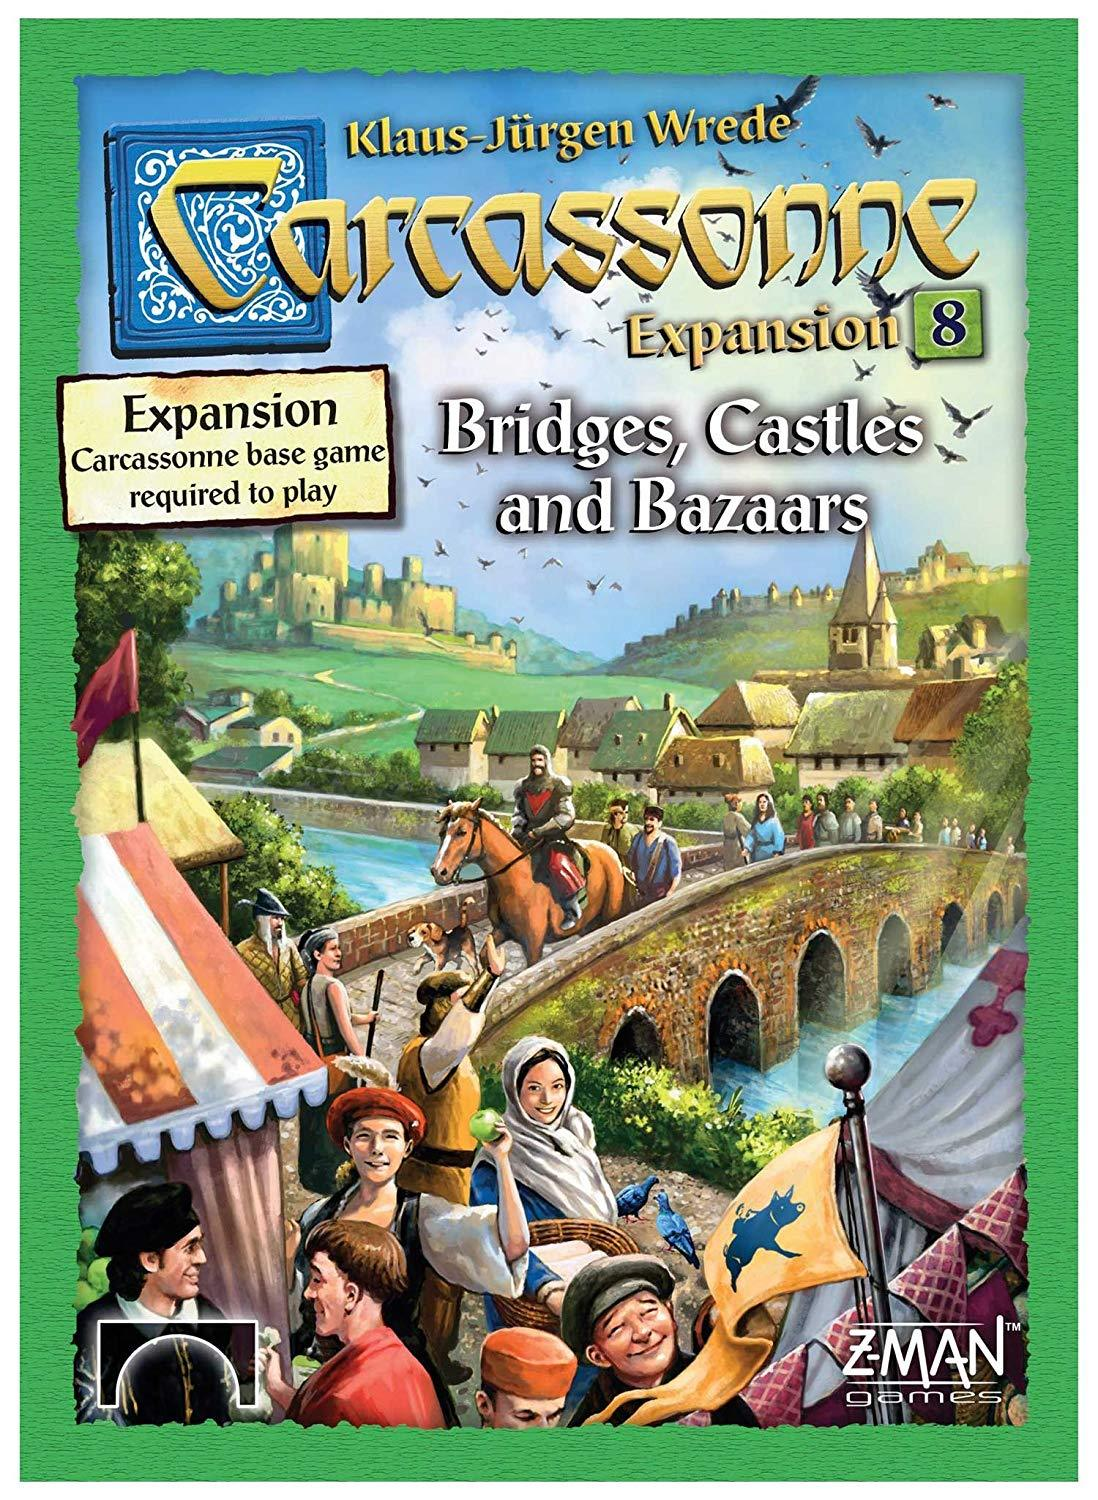 Carcassonne expansion 8 bridges  castles  and bazaars